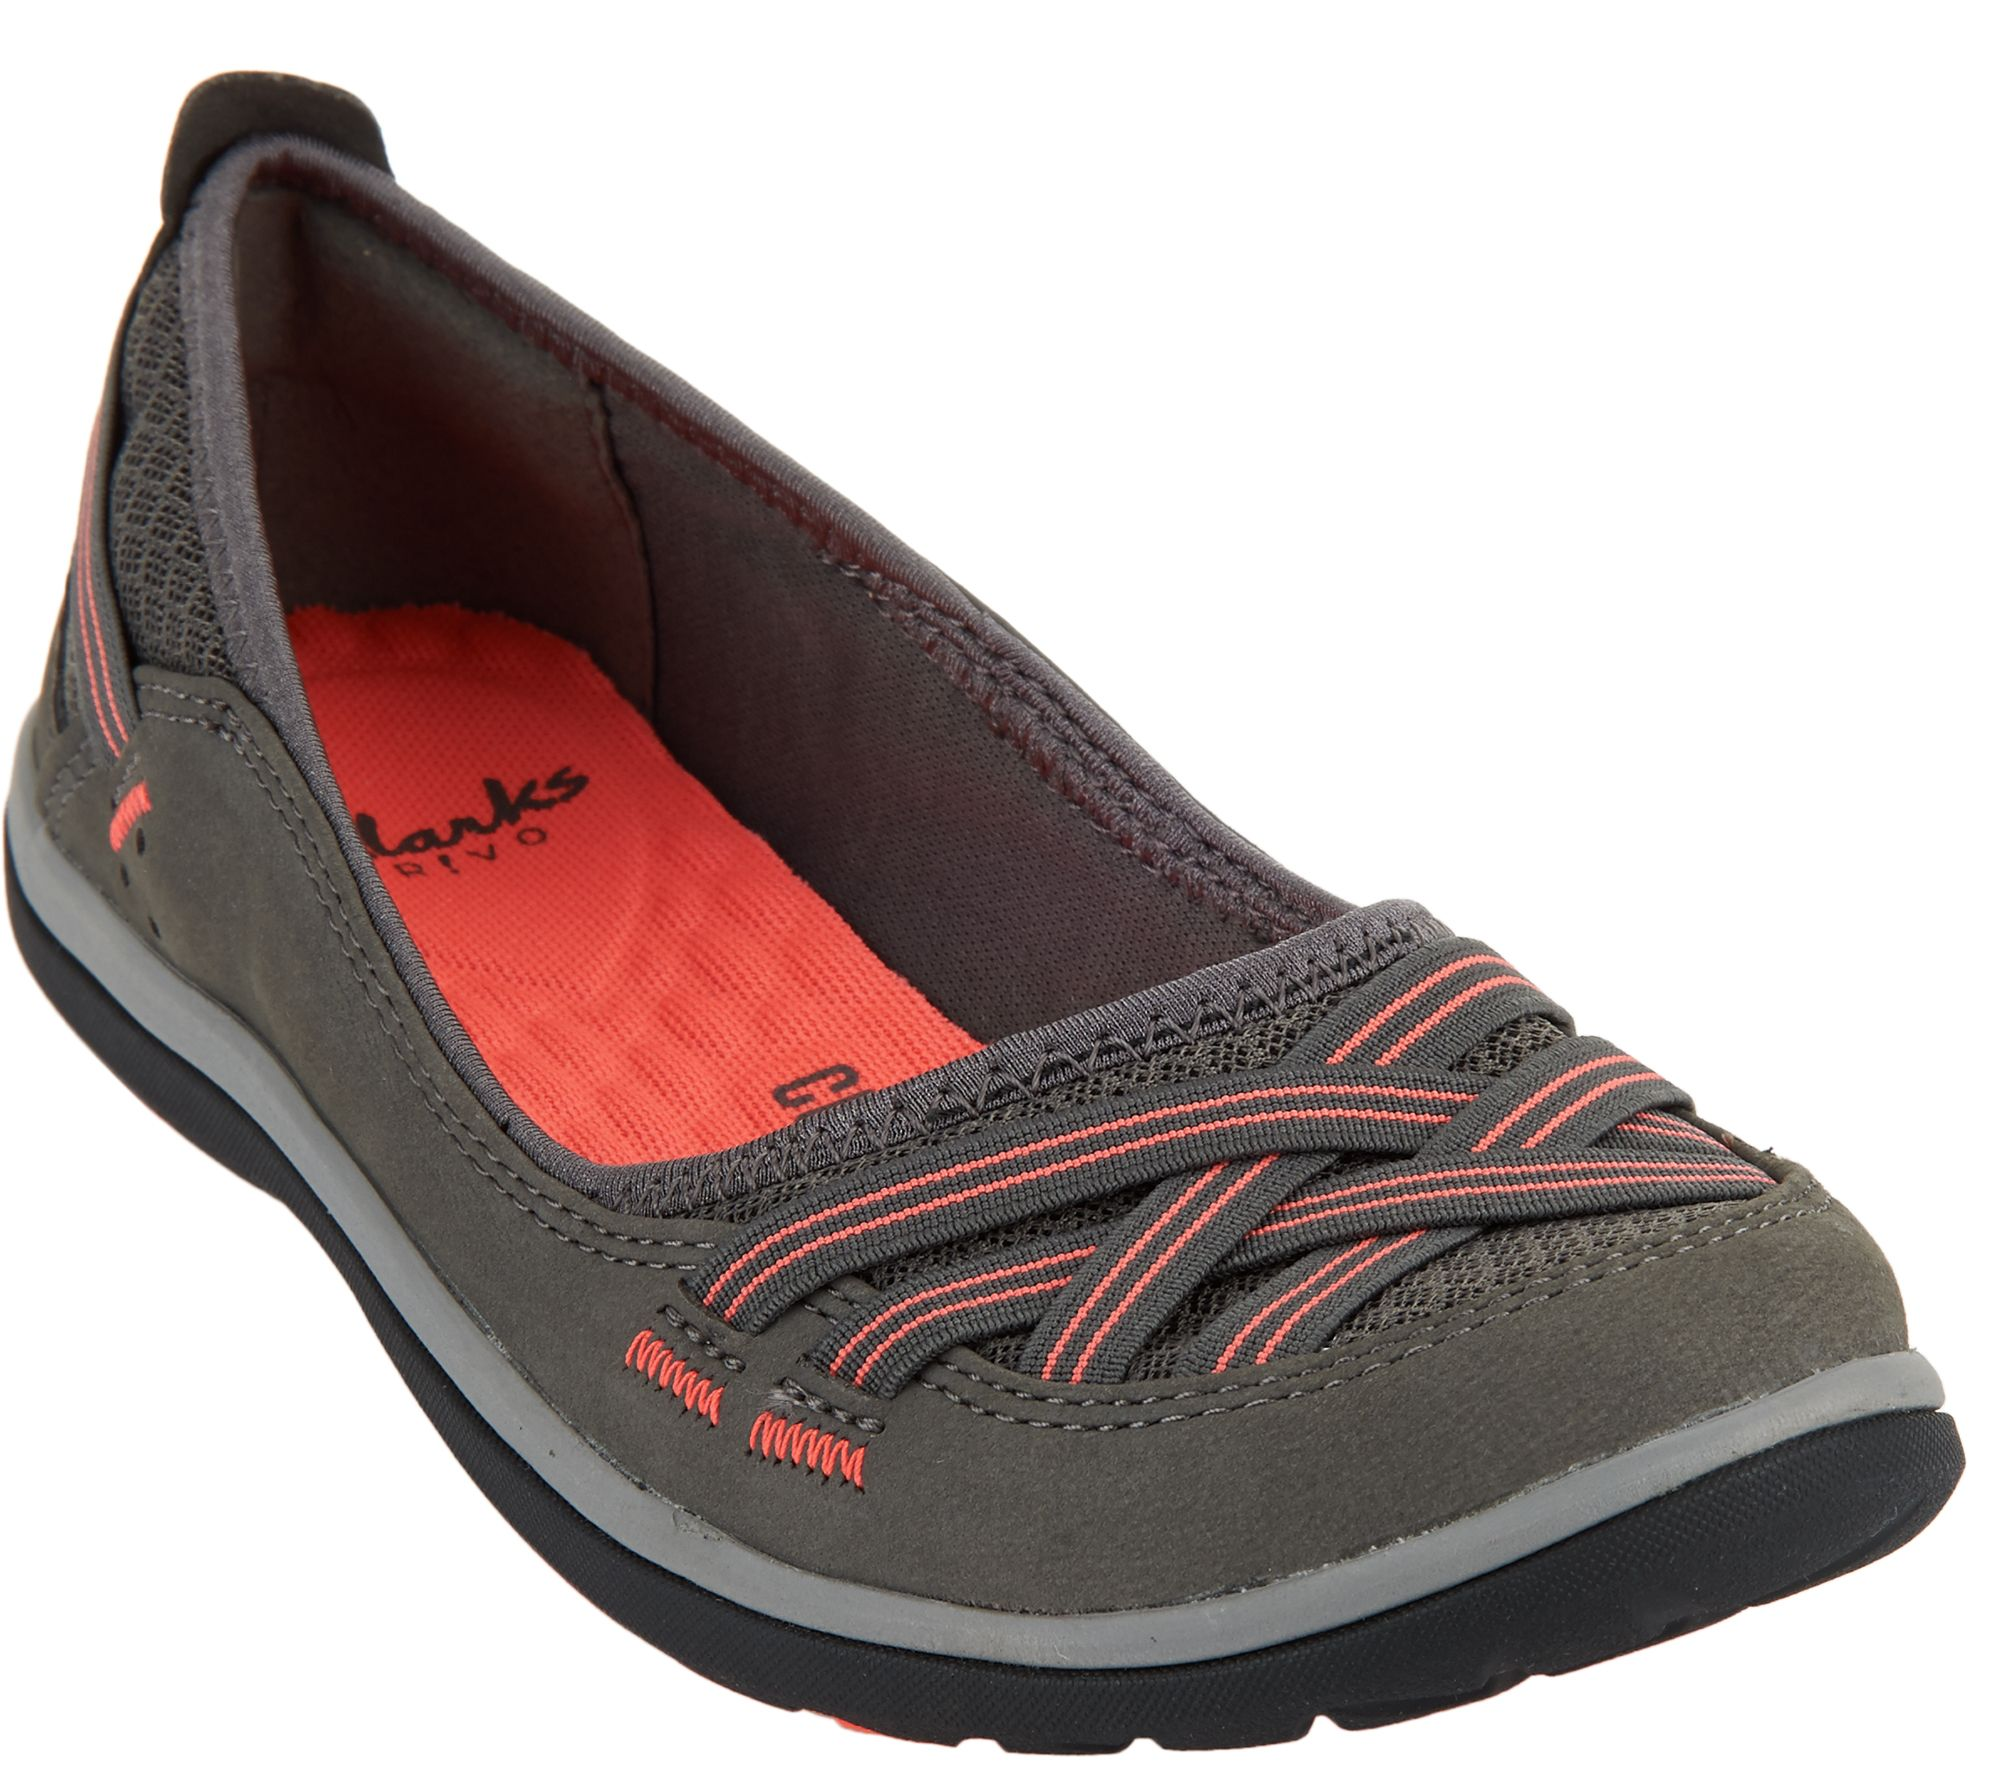 980aa495158 Clarks Outdoor Slip-on Flats - Aria Pump - Page 1 — QVC.com